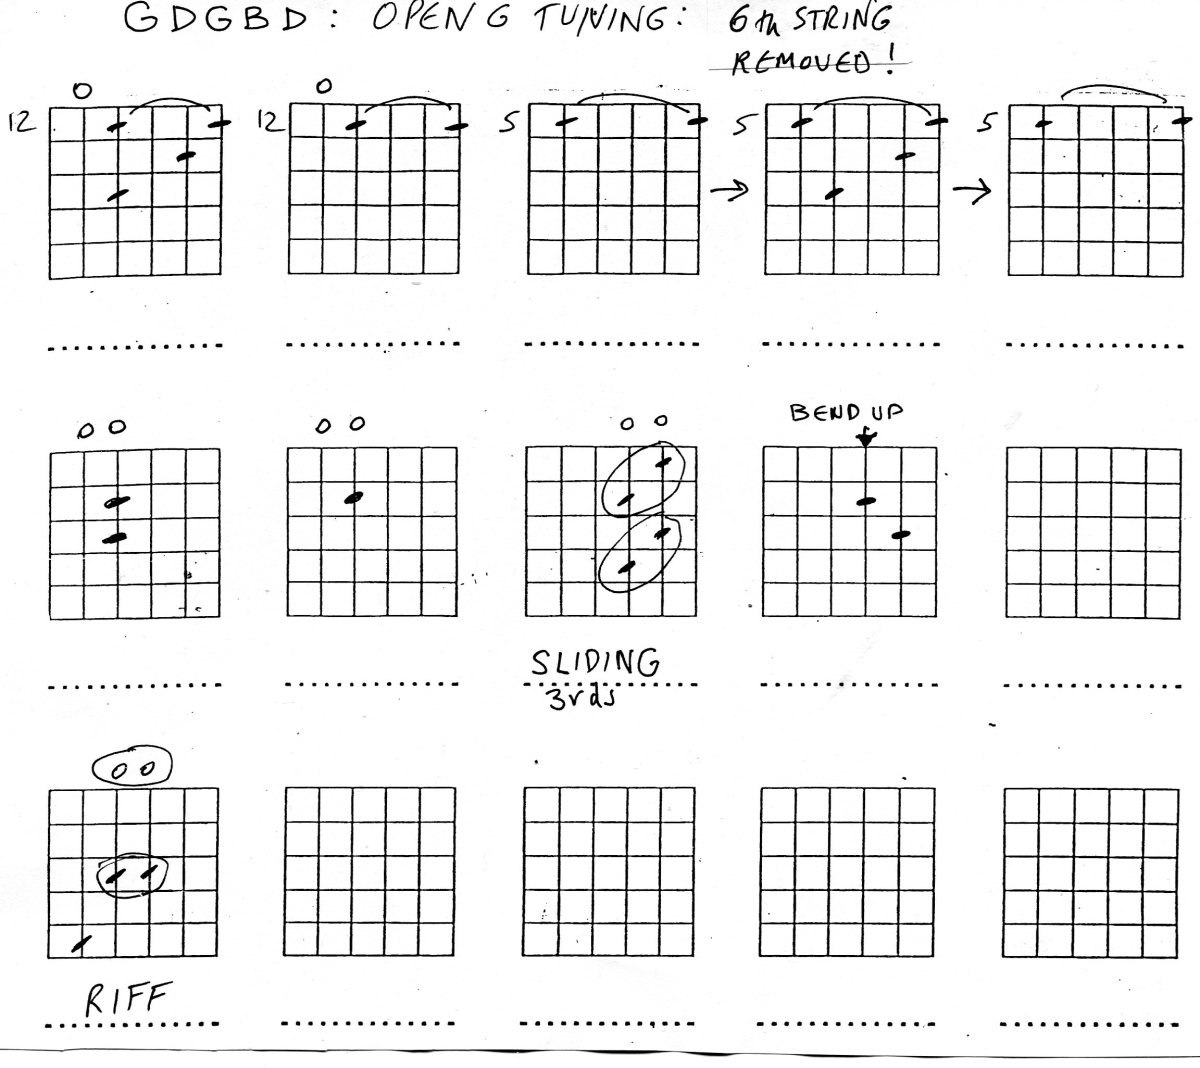 Guitar Open G Tuning—Keith Richards | Spinditty